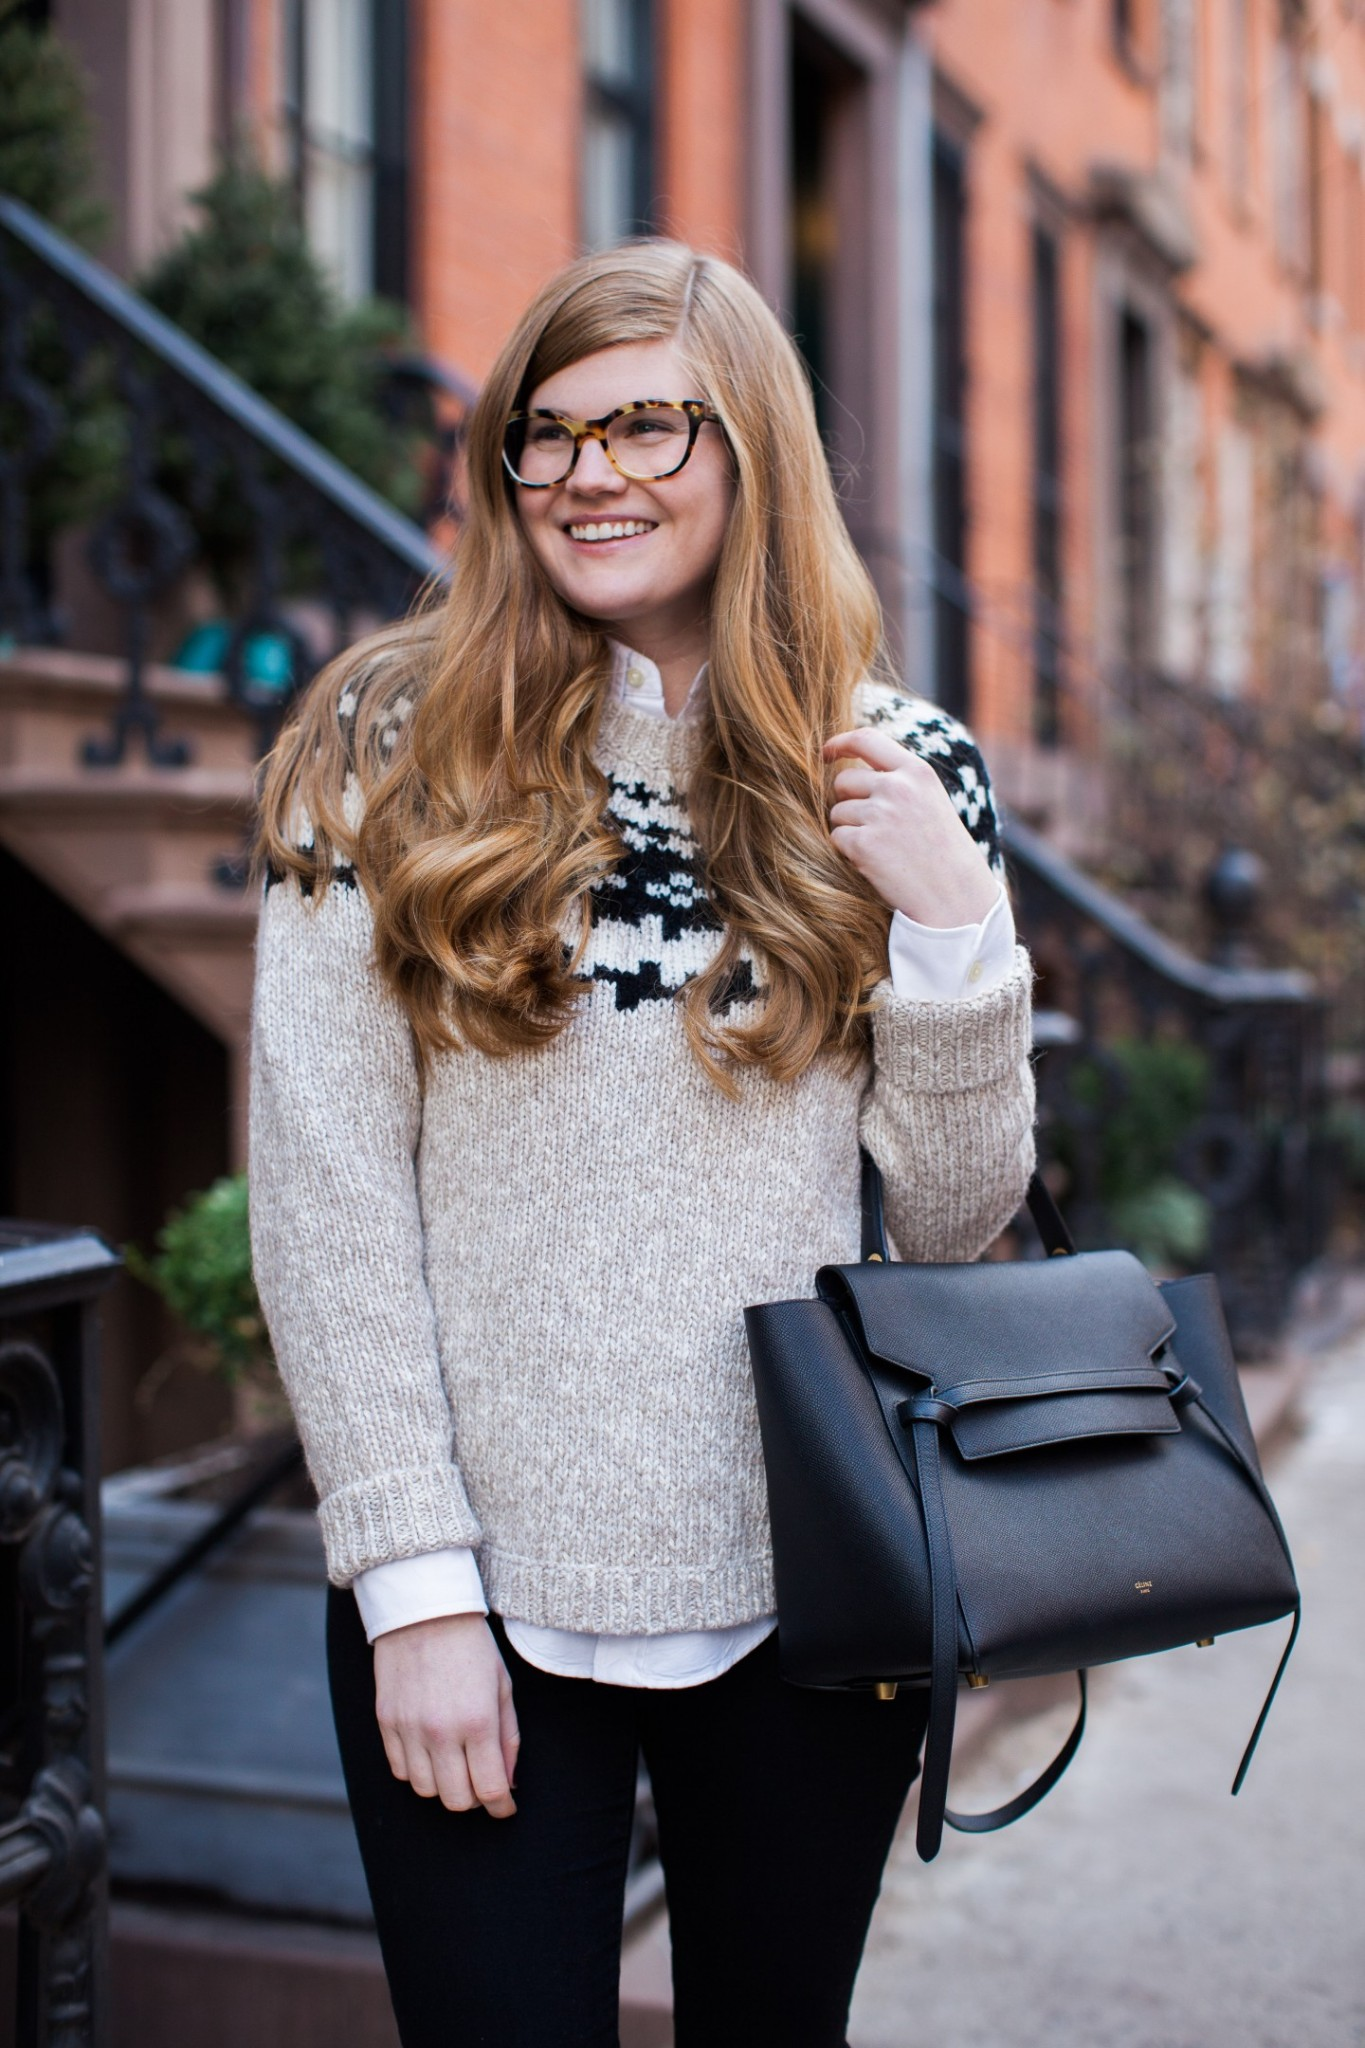 Top London fashion blogger,  Mollie Moore shares her new Havana Prada glasses